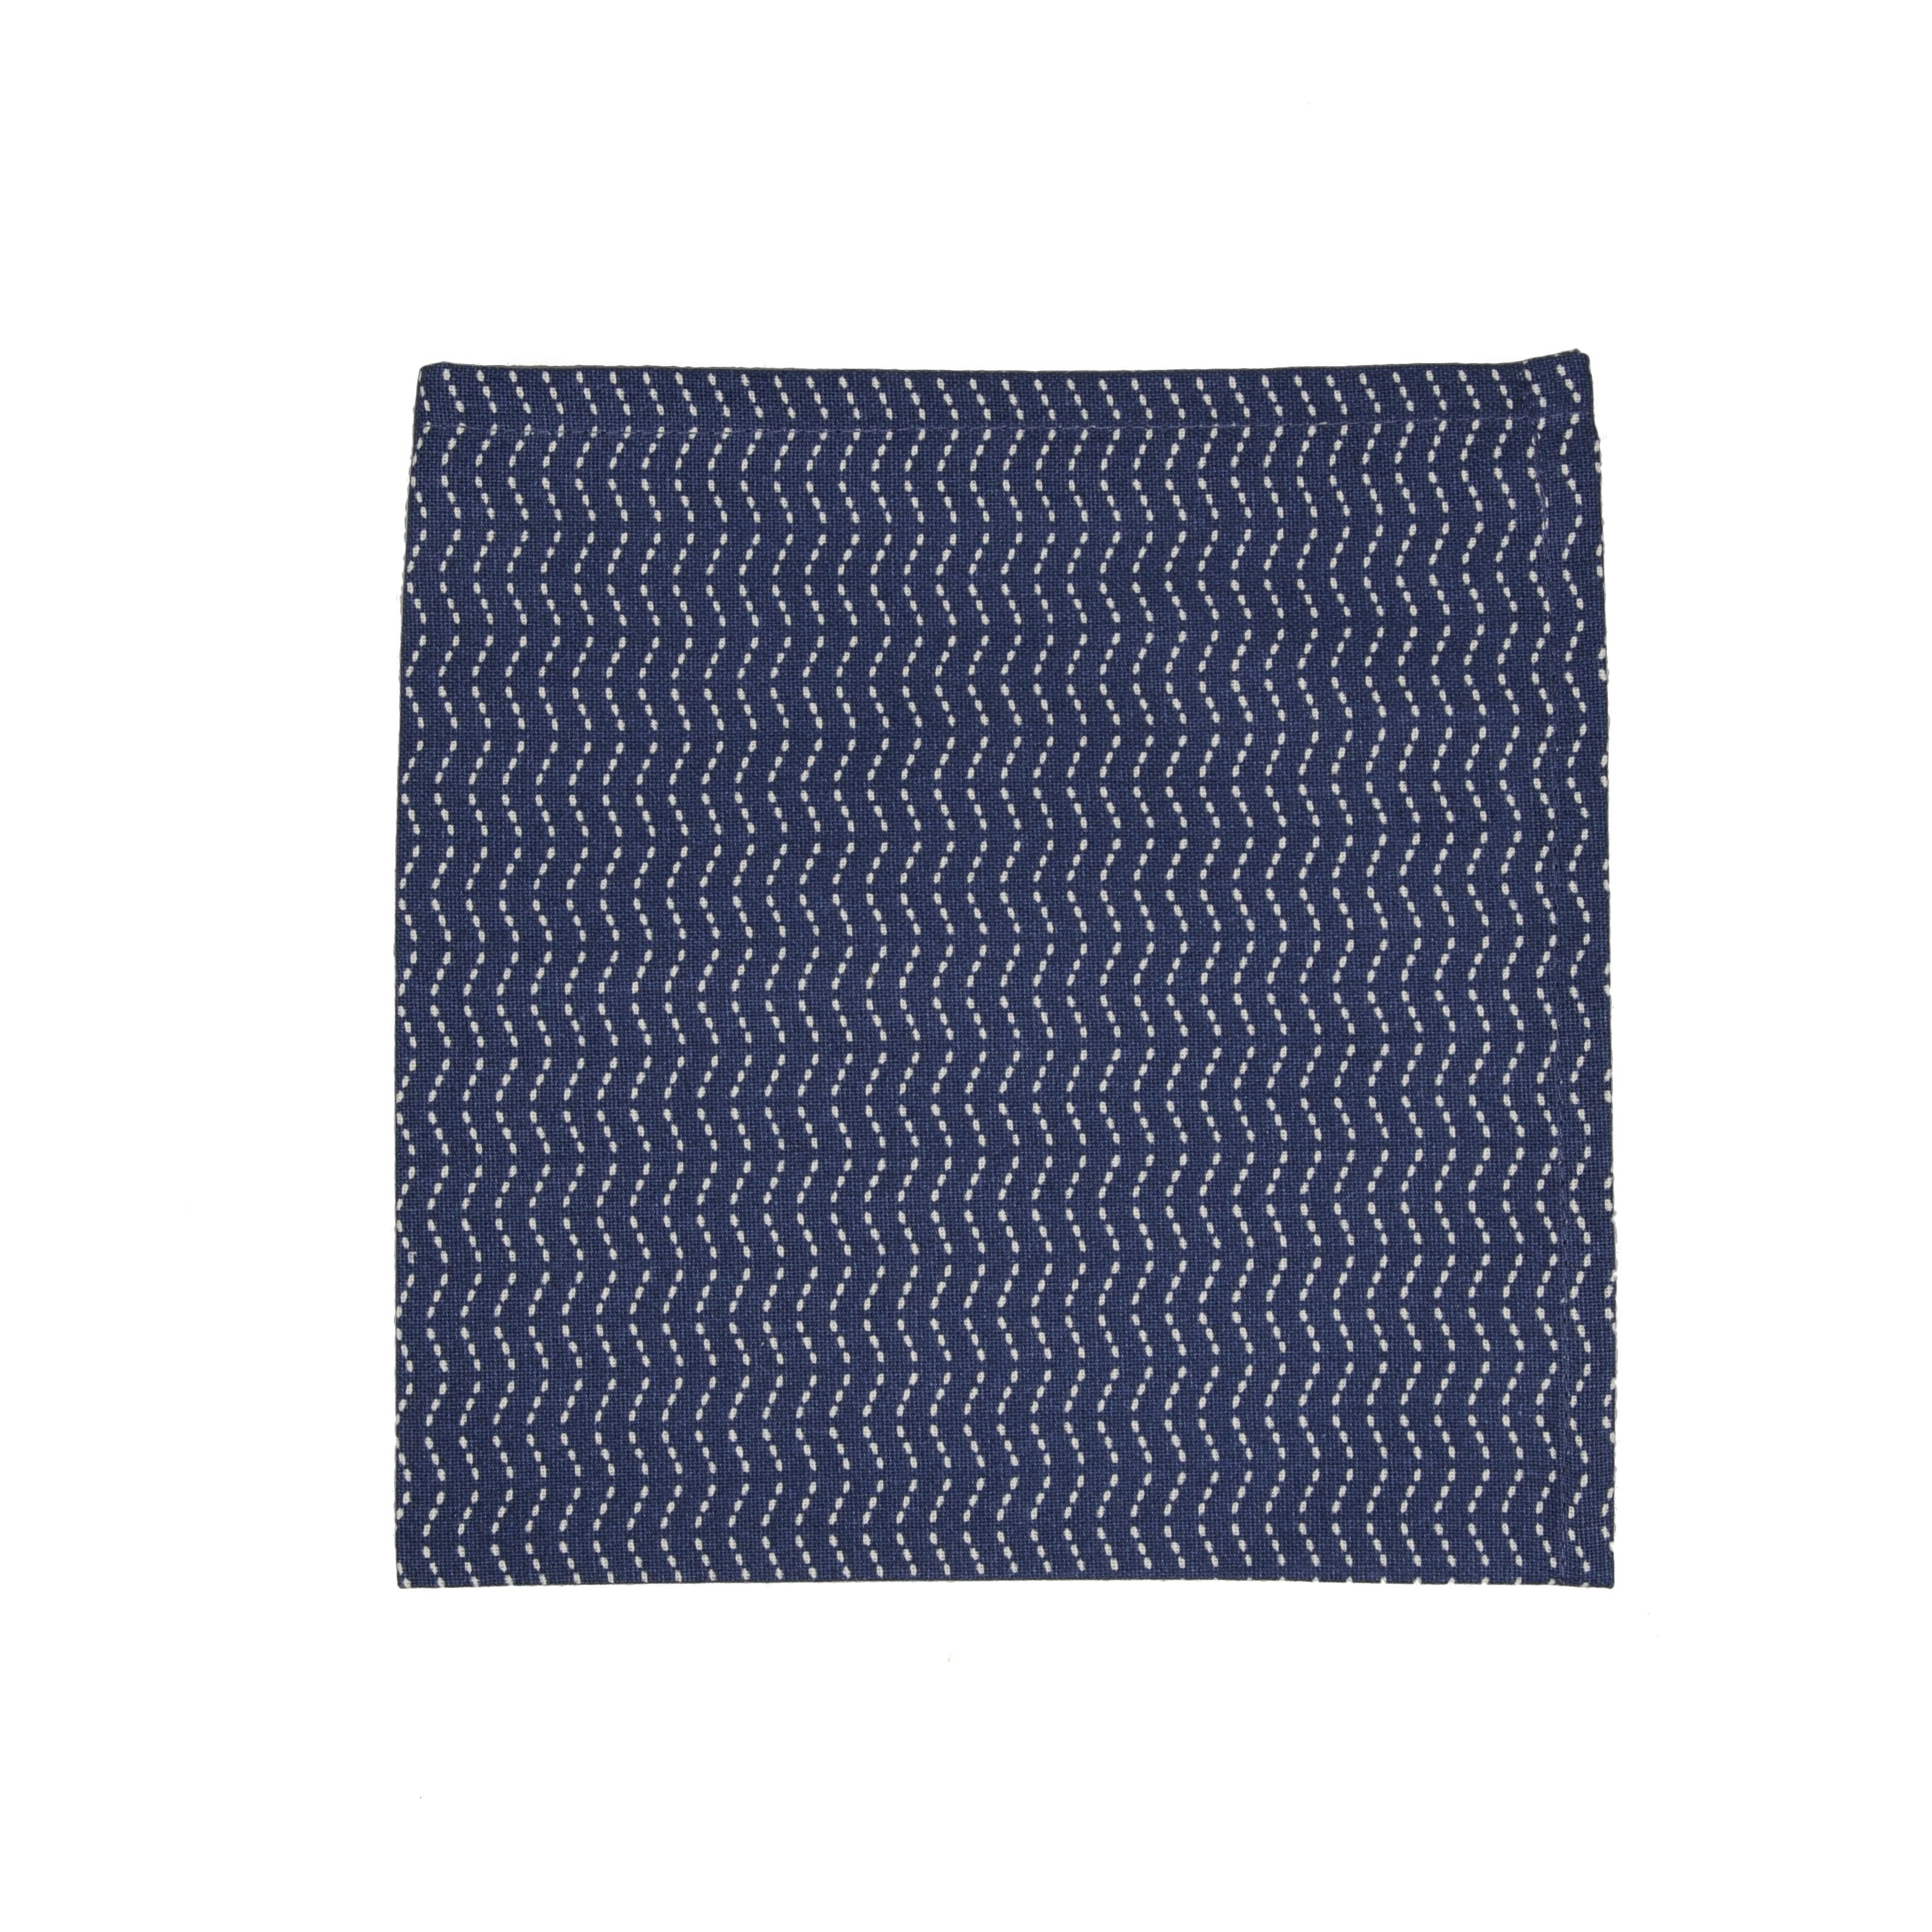 serviette de table coton bleu nuit motif en zigzag 40x40 cm dille kamille depuis 1974. Black Bedroom Furniture Sets. Home Design Ideas